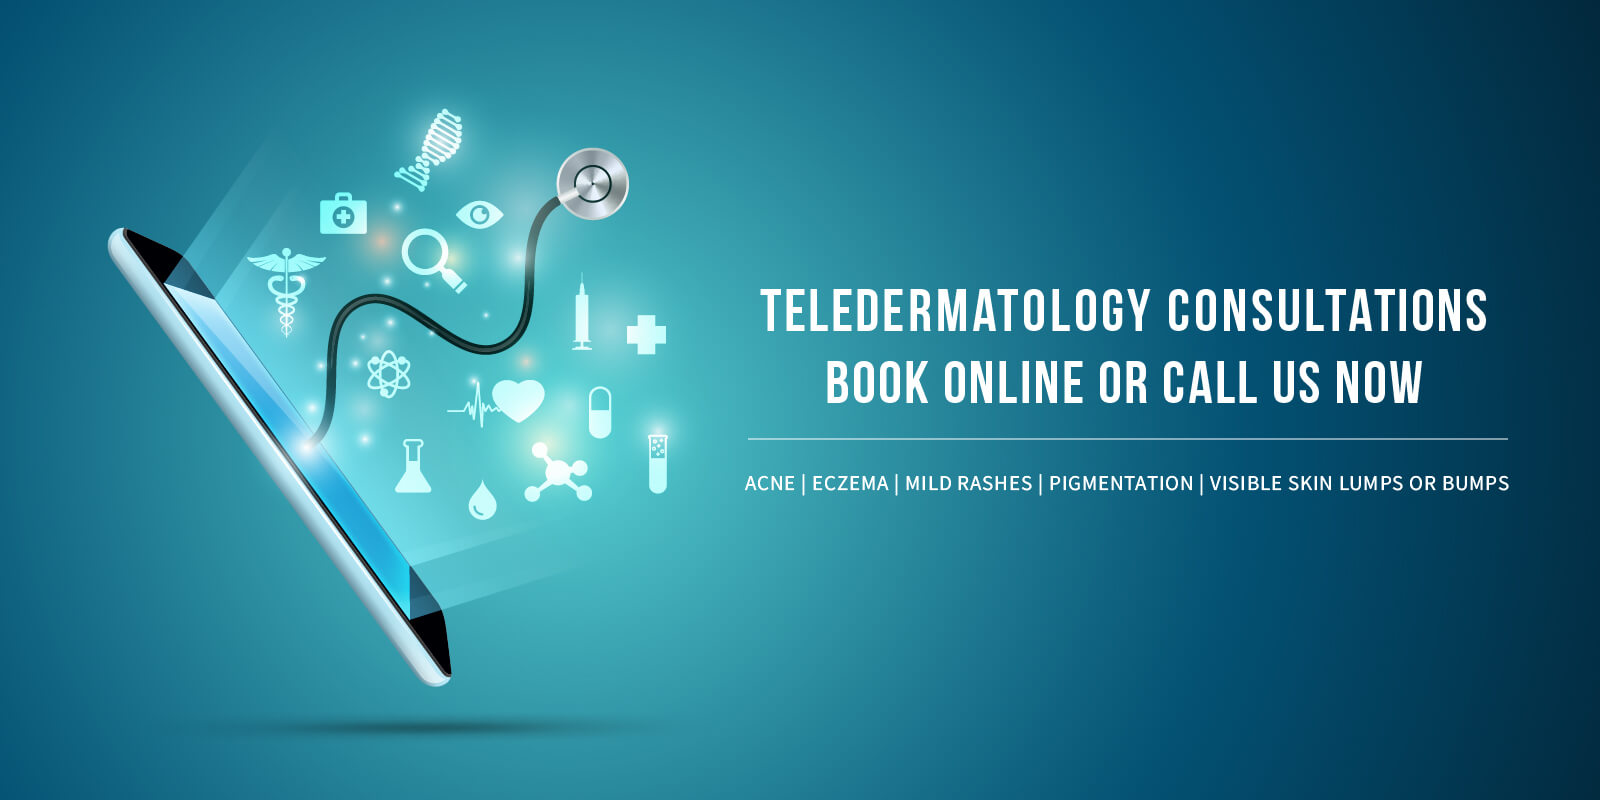 Teledermatology Consultations